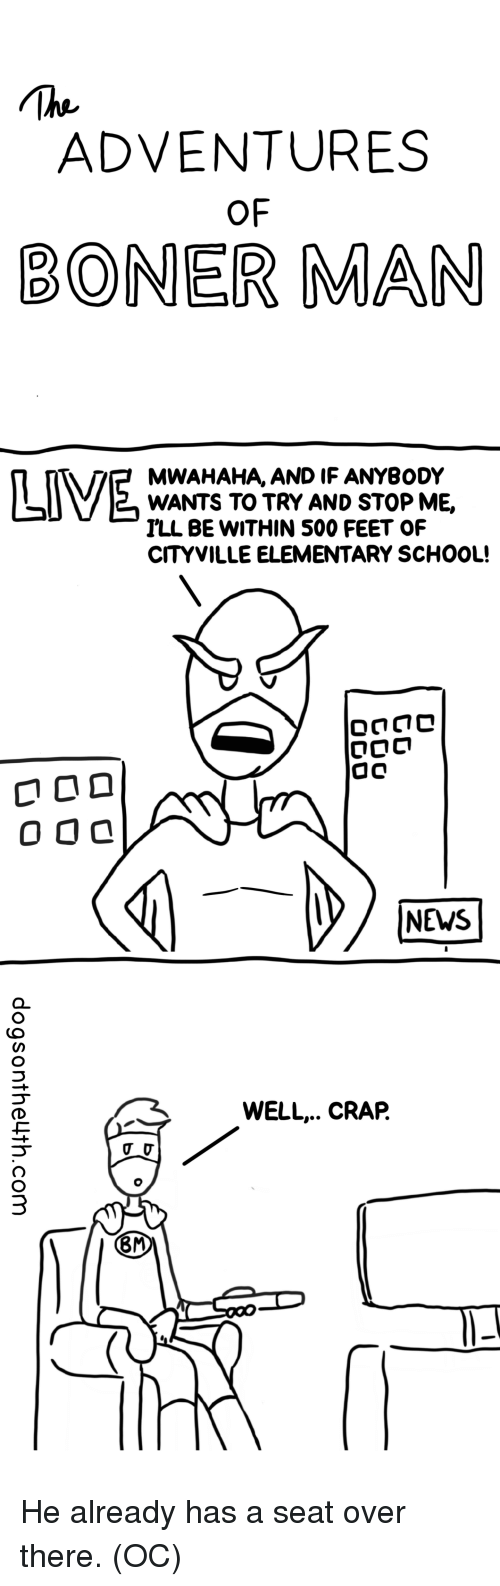 Boner, News, and School: ADVENTURES  OF  BONER MAN  MWAHAHA, AND IF ANYBODY  WANTS TO TRY AND STOP ME,  ILL BE WITHIN 500 FEET OF  CITYVILLE ELEMENTARY SCHOOL!  NEWS  WELL.. CRAP.  8M He already has a seat over there. (OC)